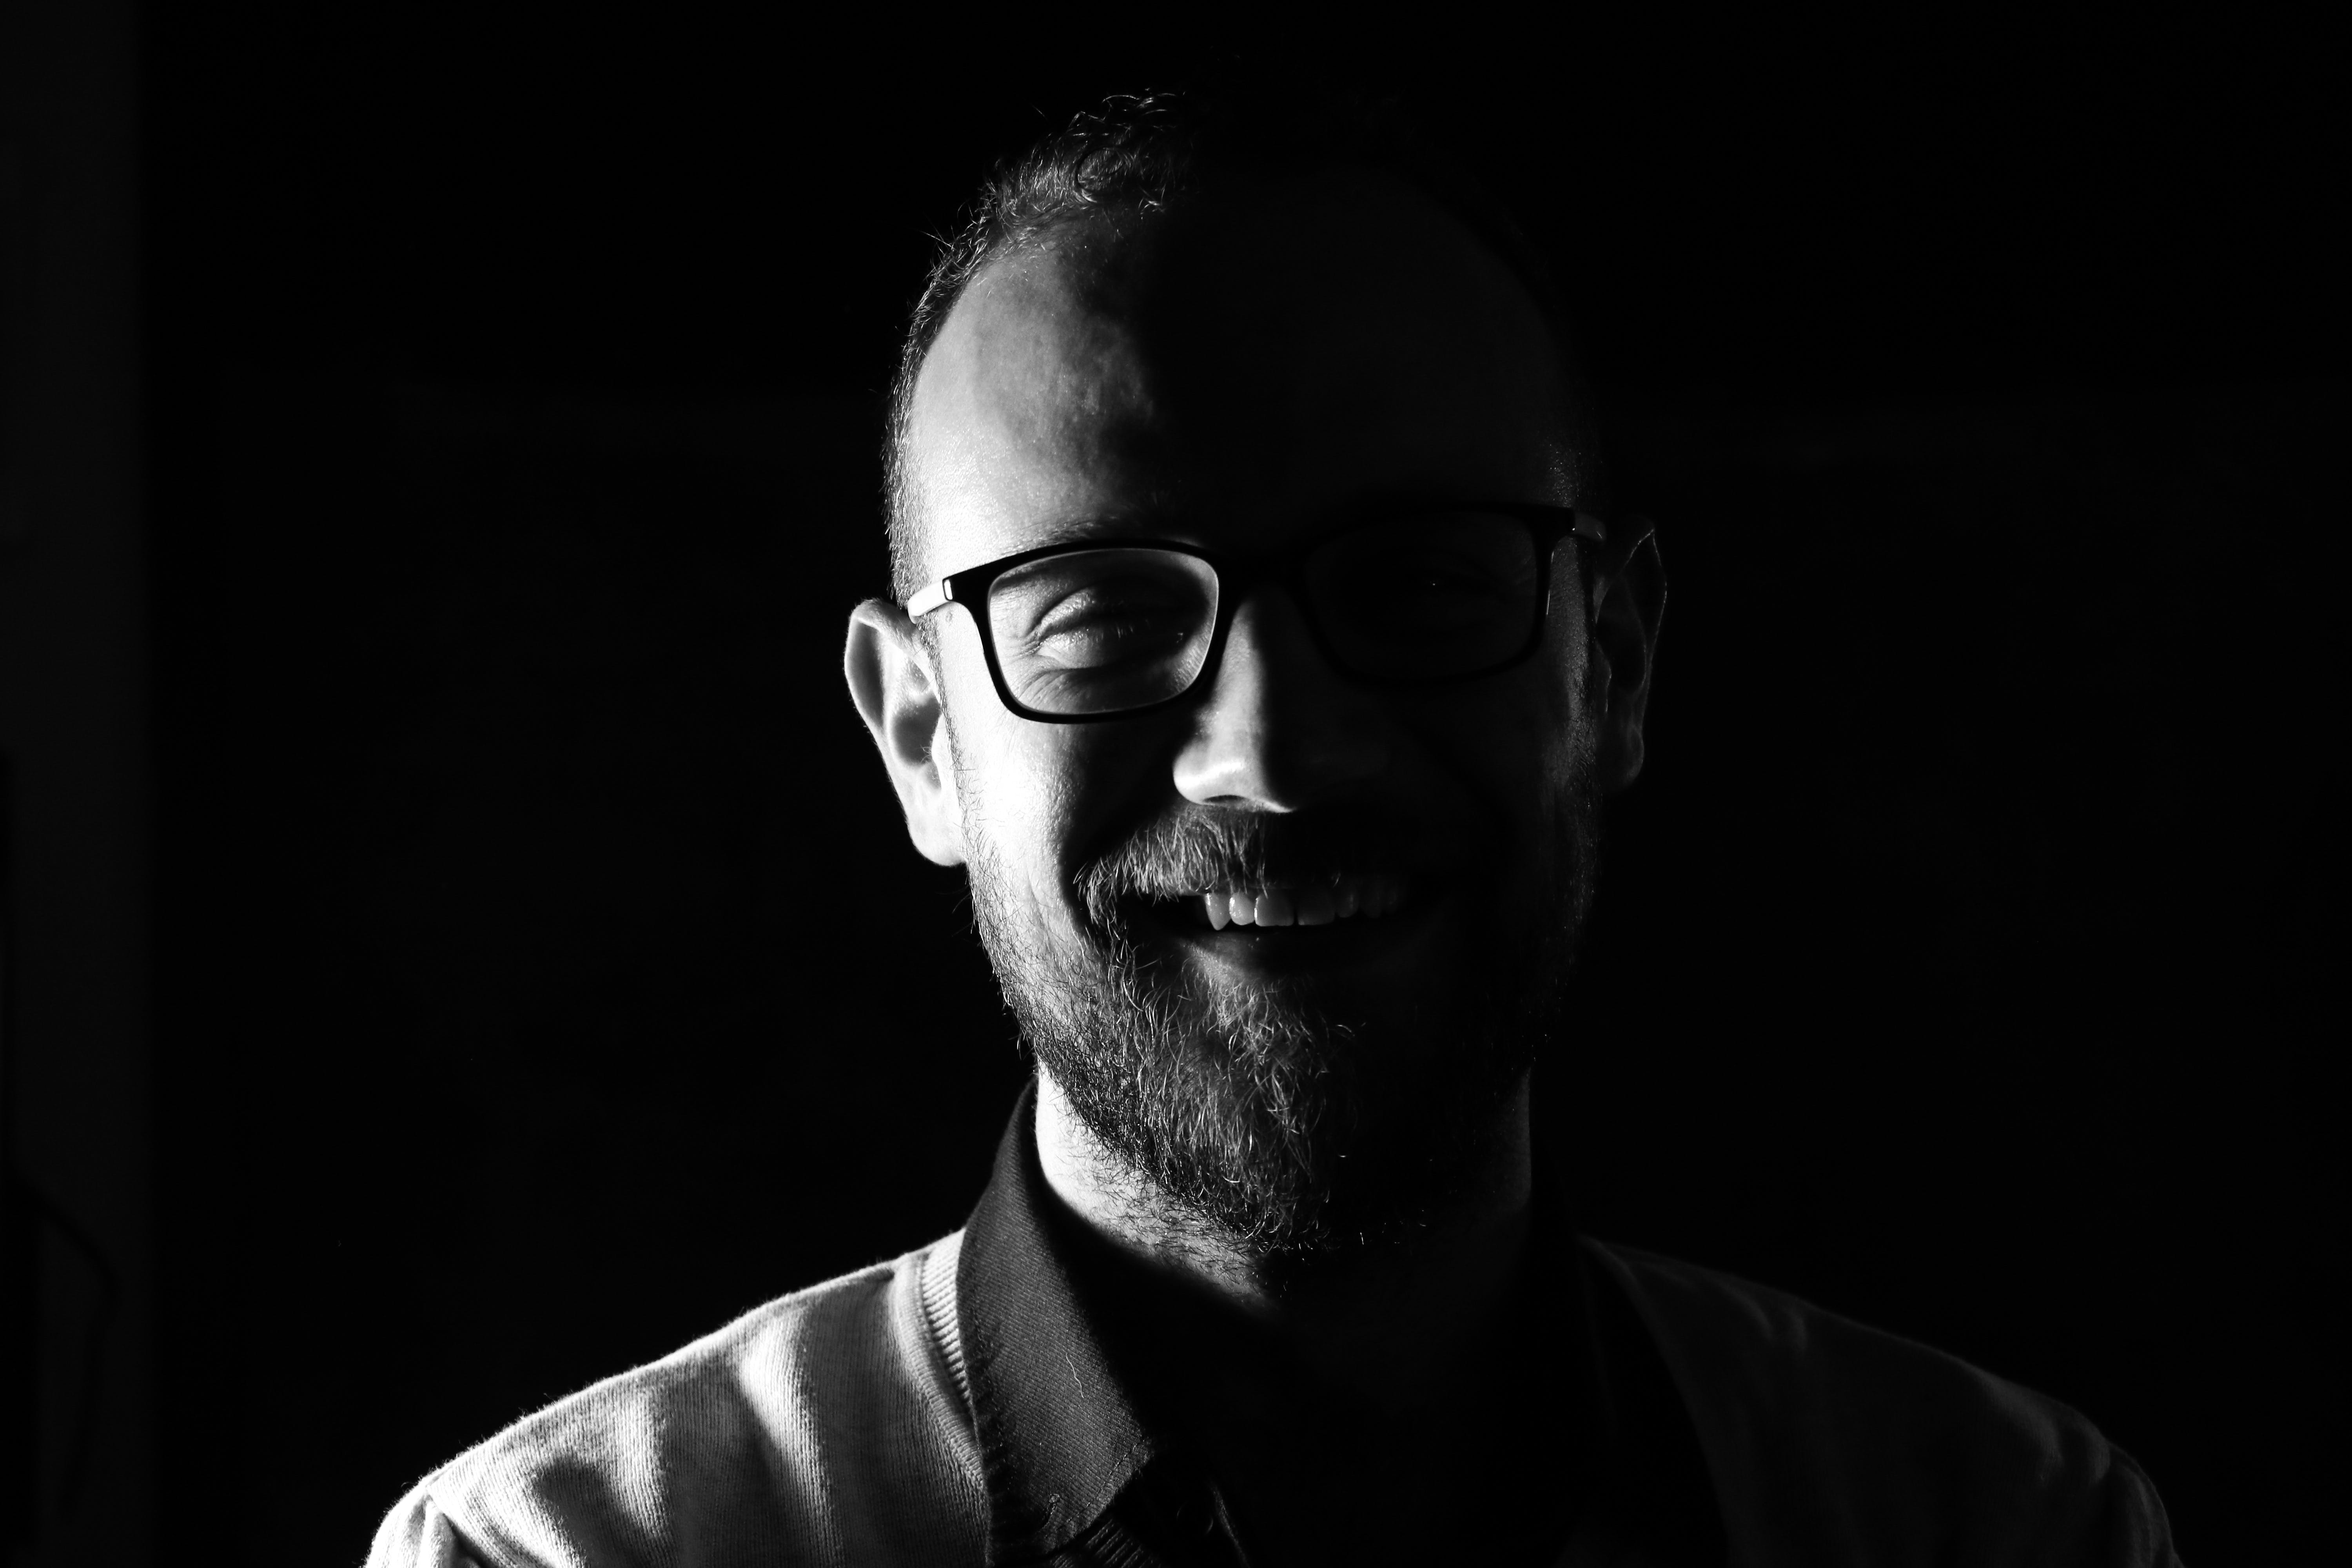 Grayscale Photo Of Smiling Man